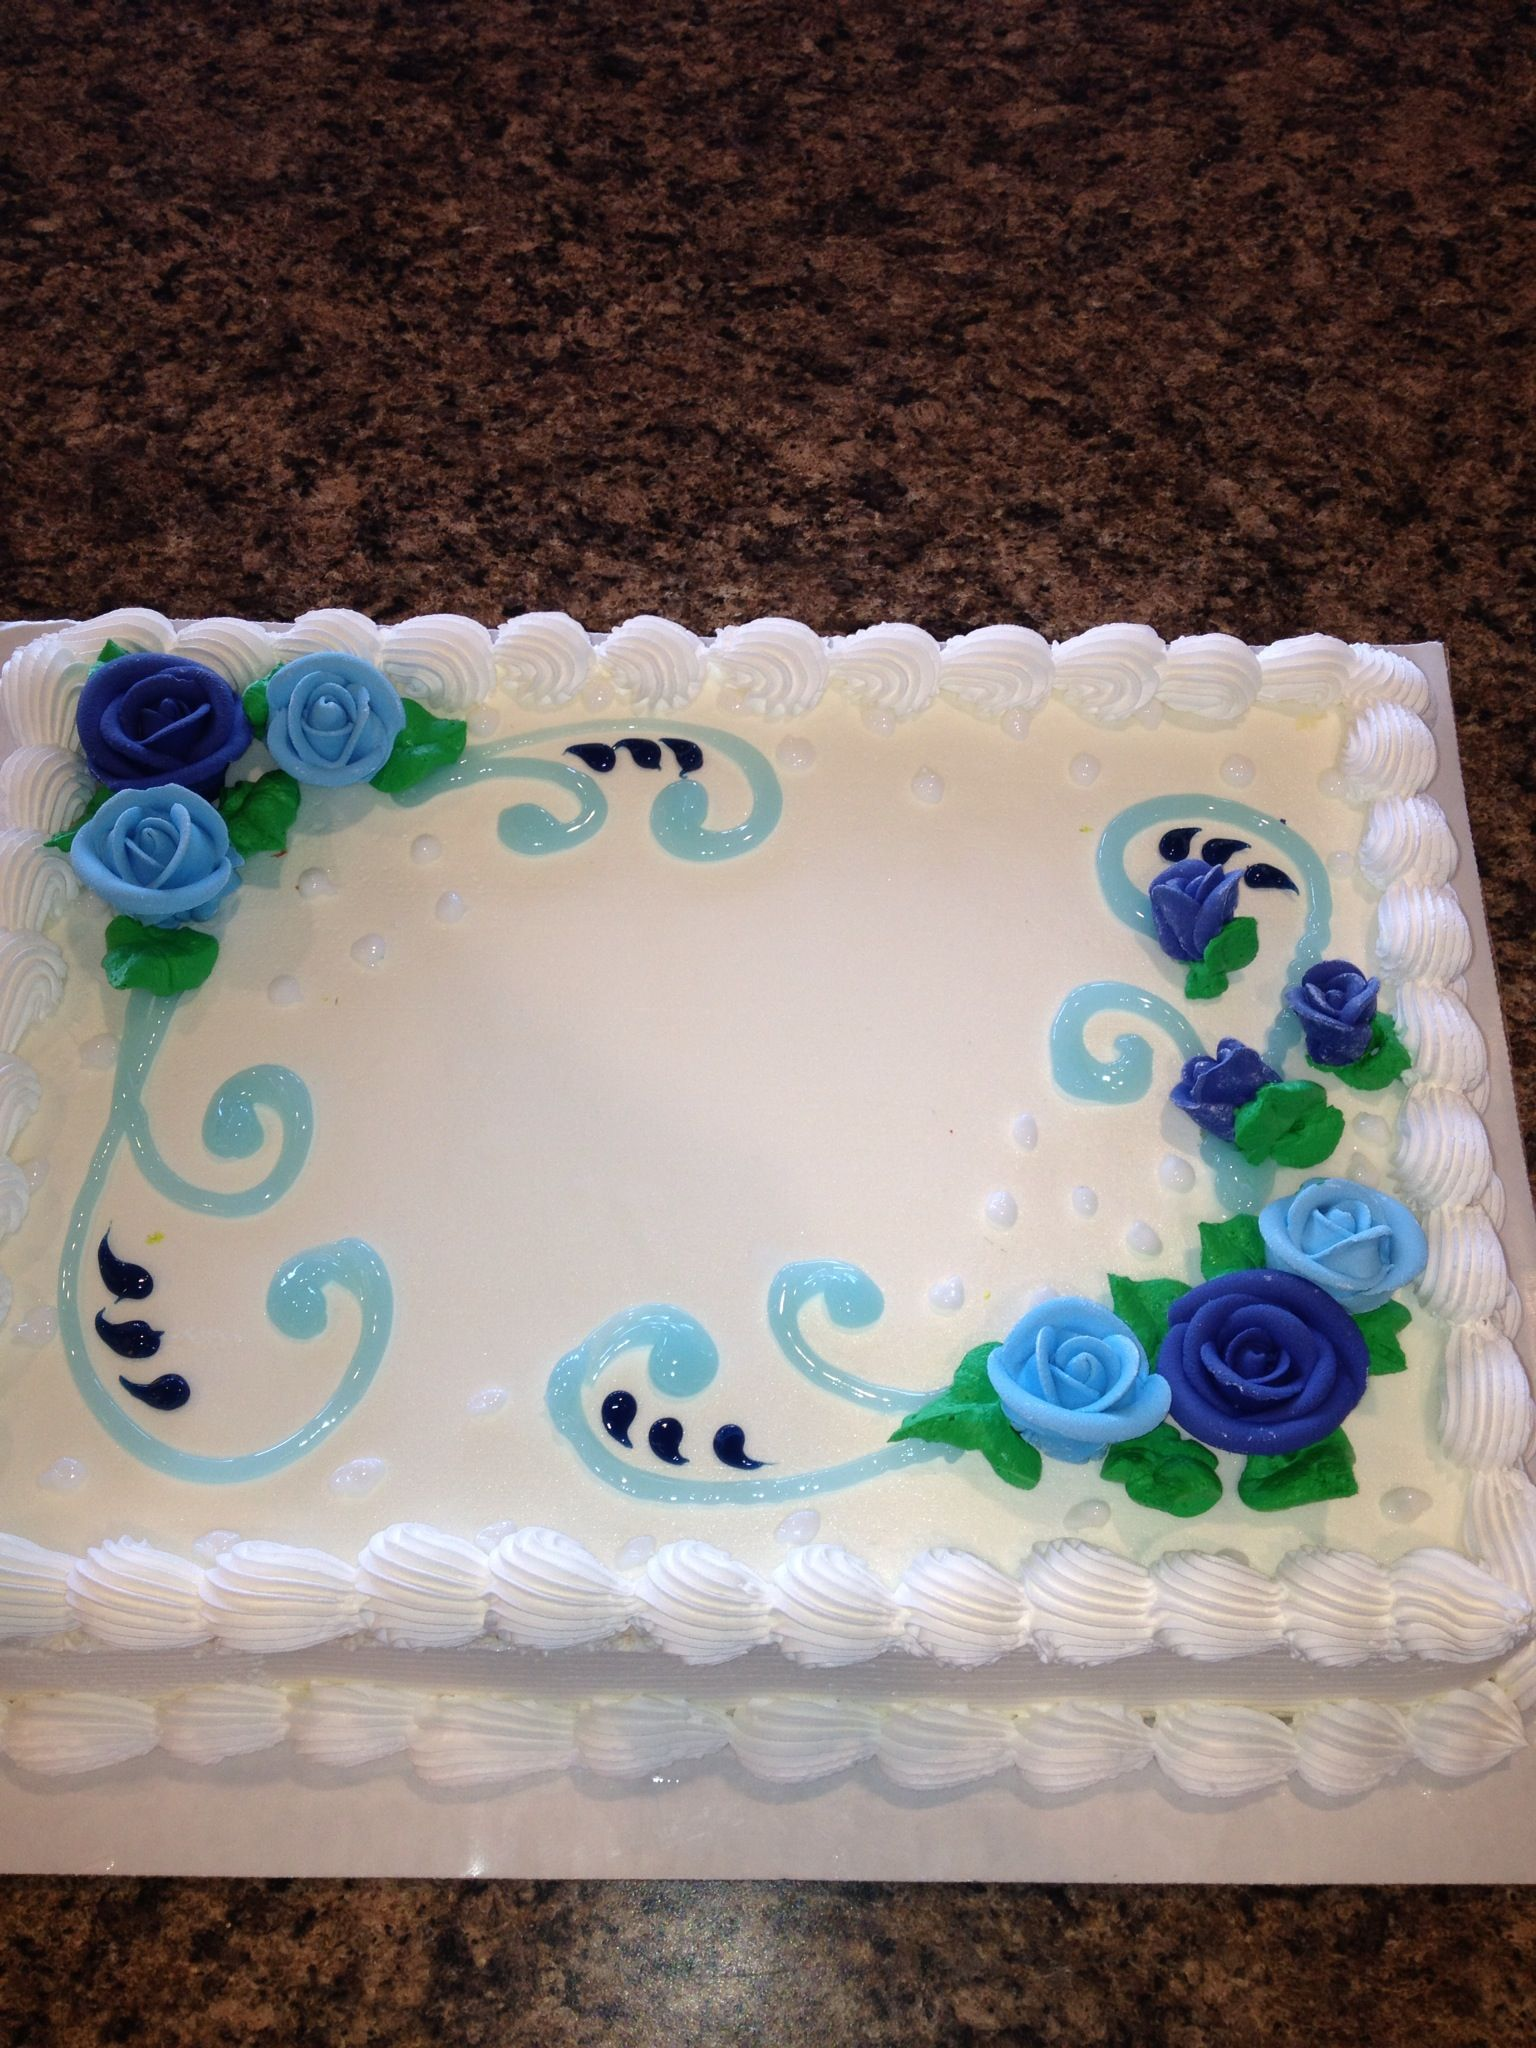 Cake Designs At Dairy Queen : Roses...Dq cakes...Dairy Queen ? Pinteres?